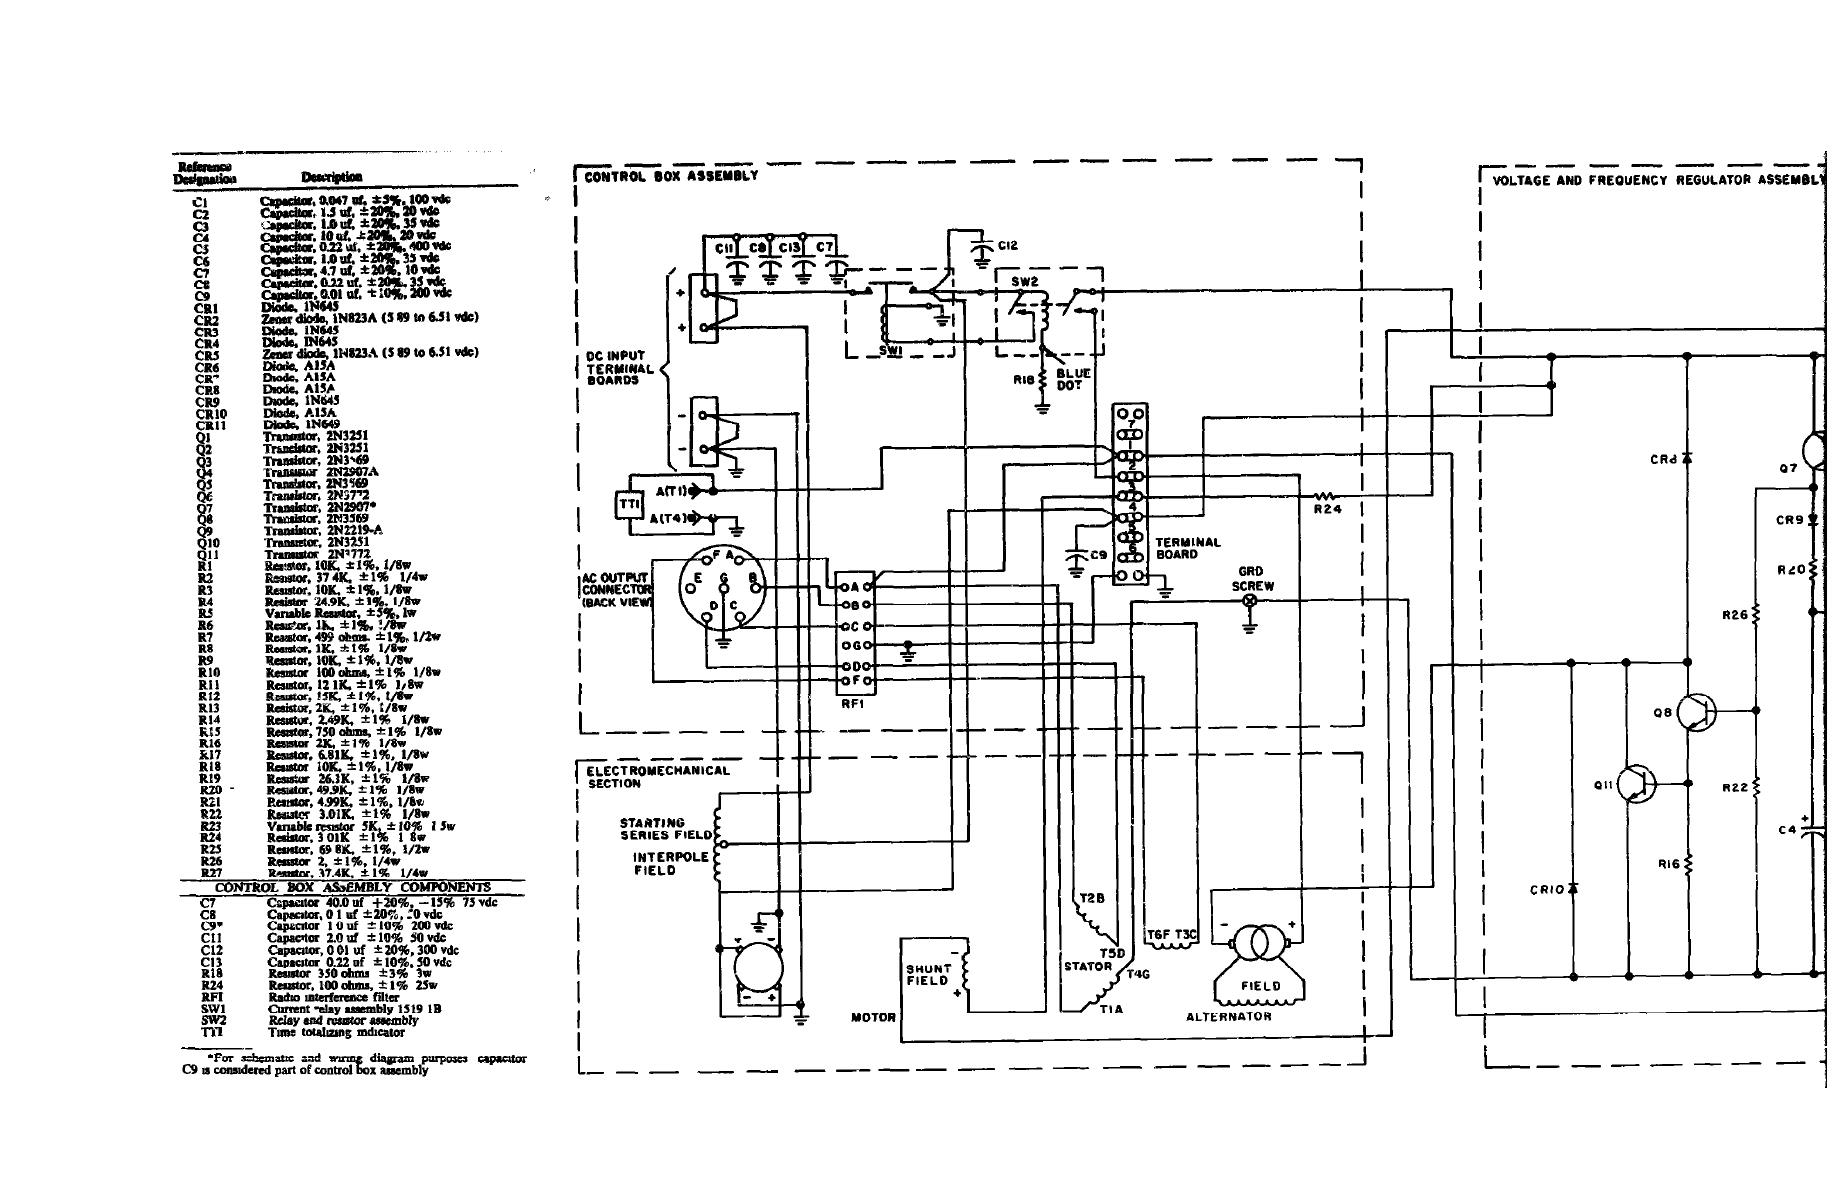 Figure Fo 2 1 Schematic Diagram For Motor Generator Pu